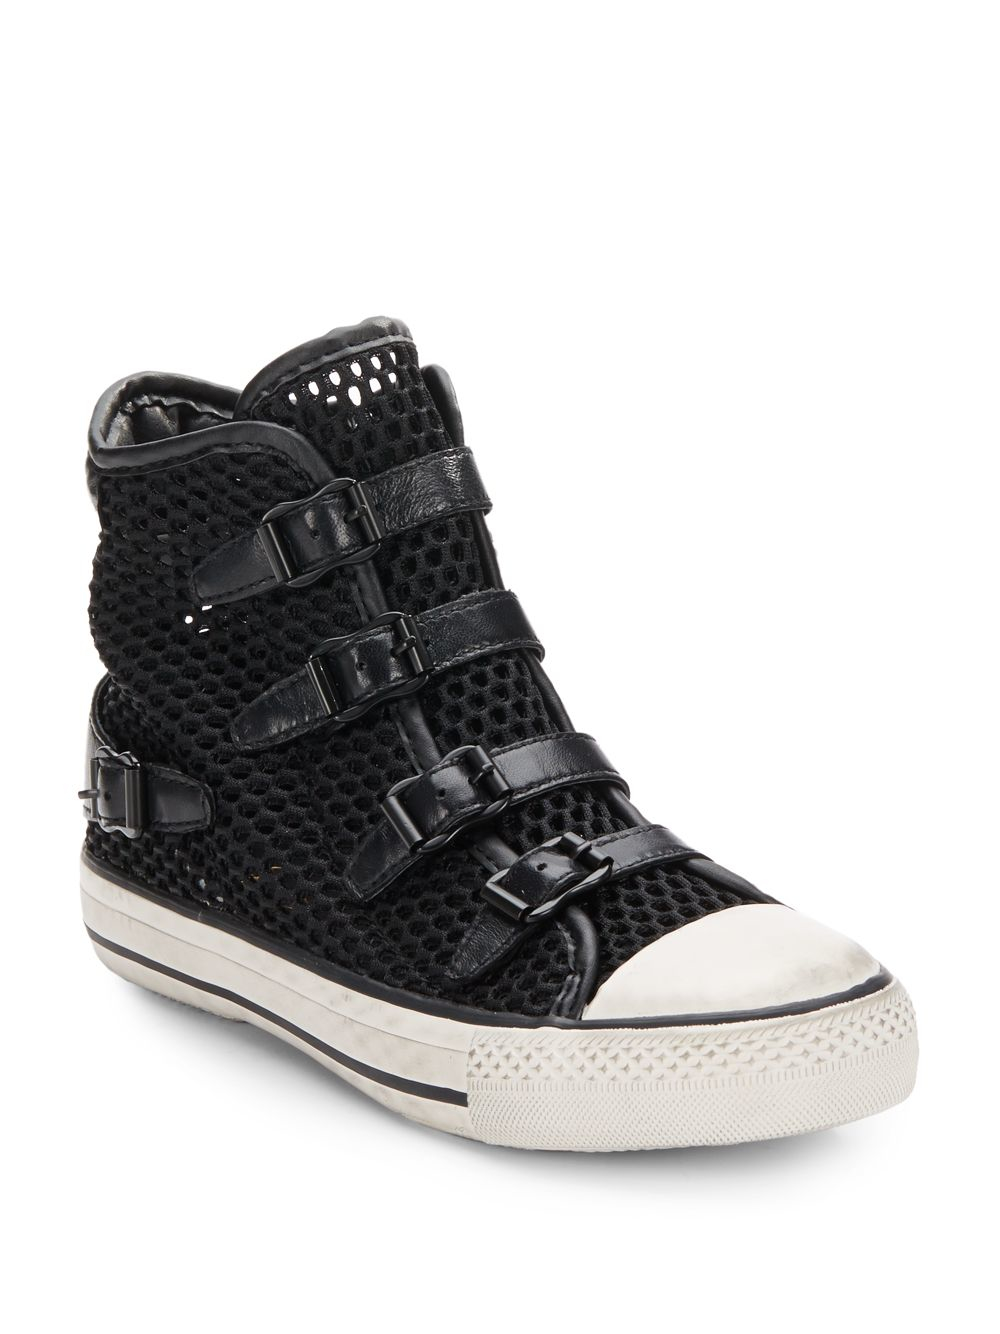 lyst ash vanessa mesh high top sneakers in black. Black Bedroom Furniture Sets. Home Design Ideas